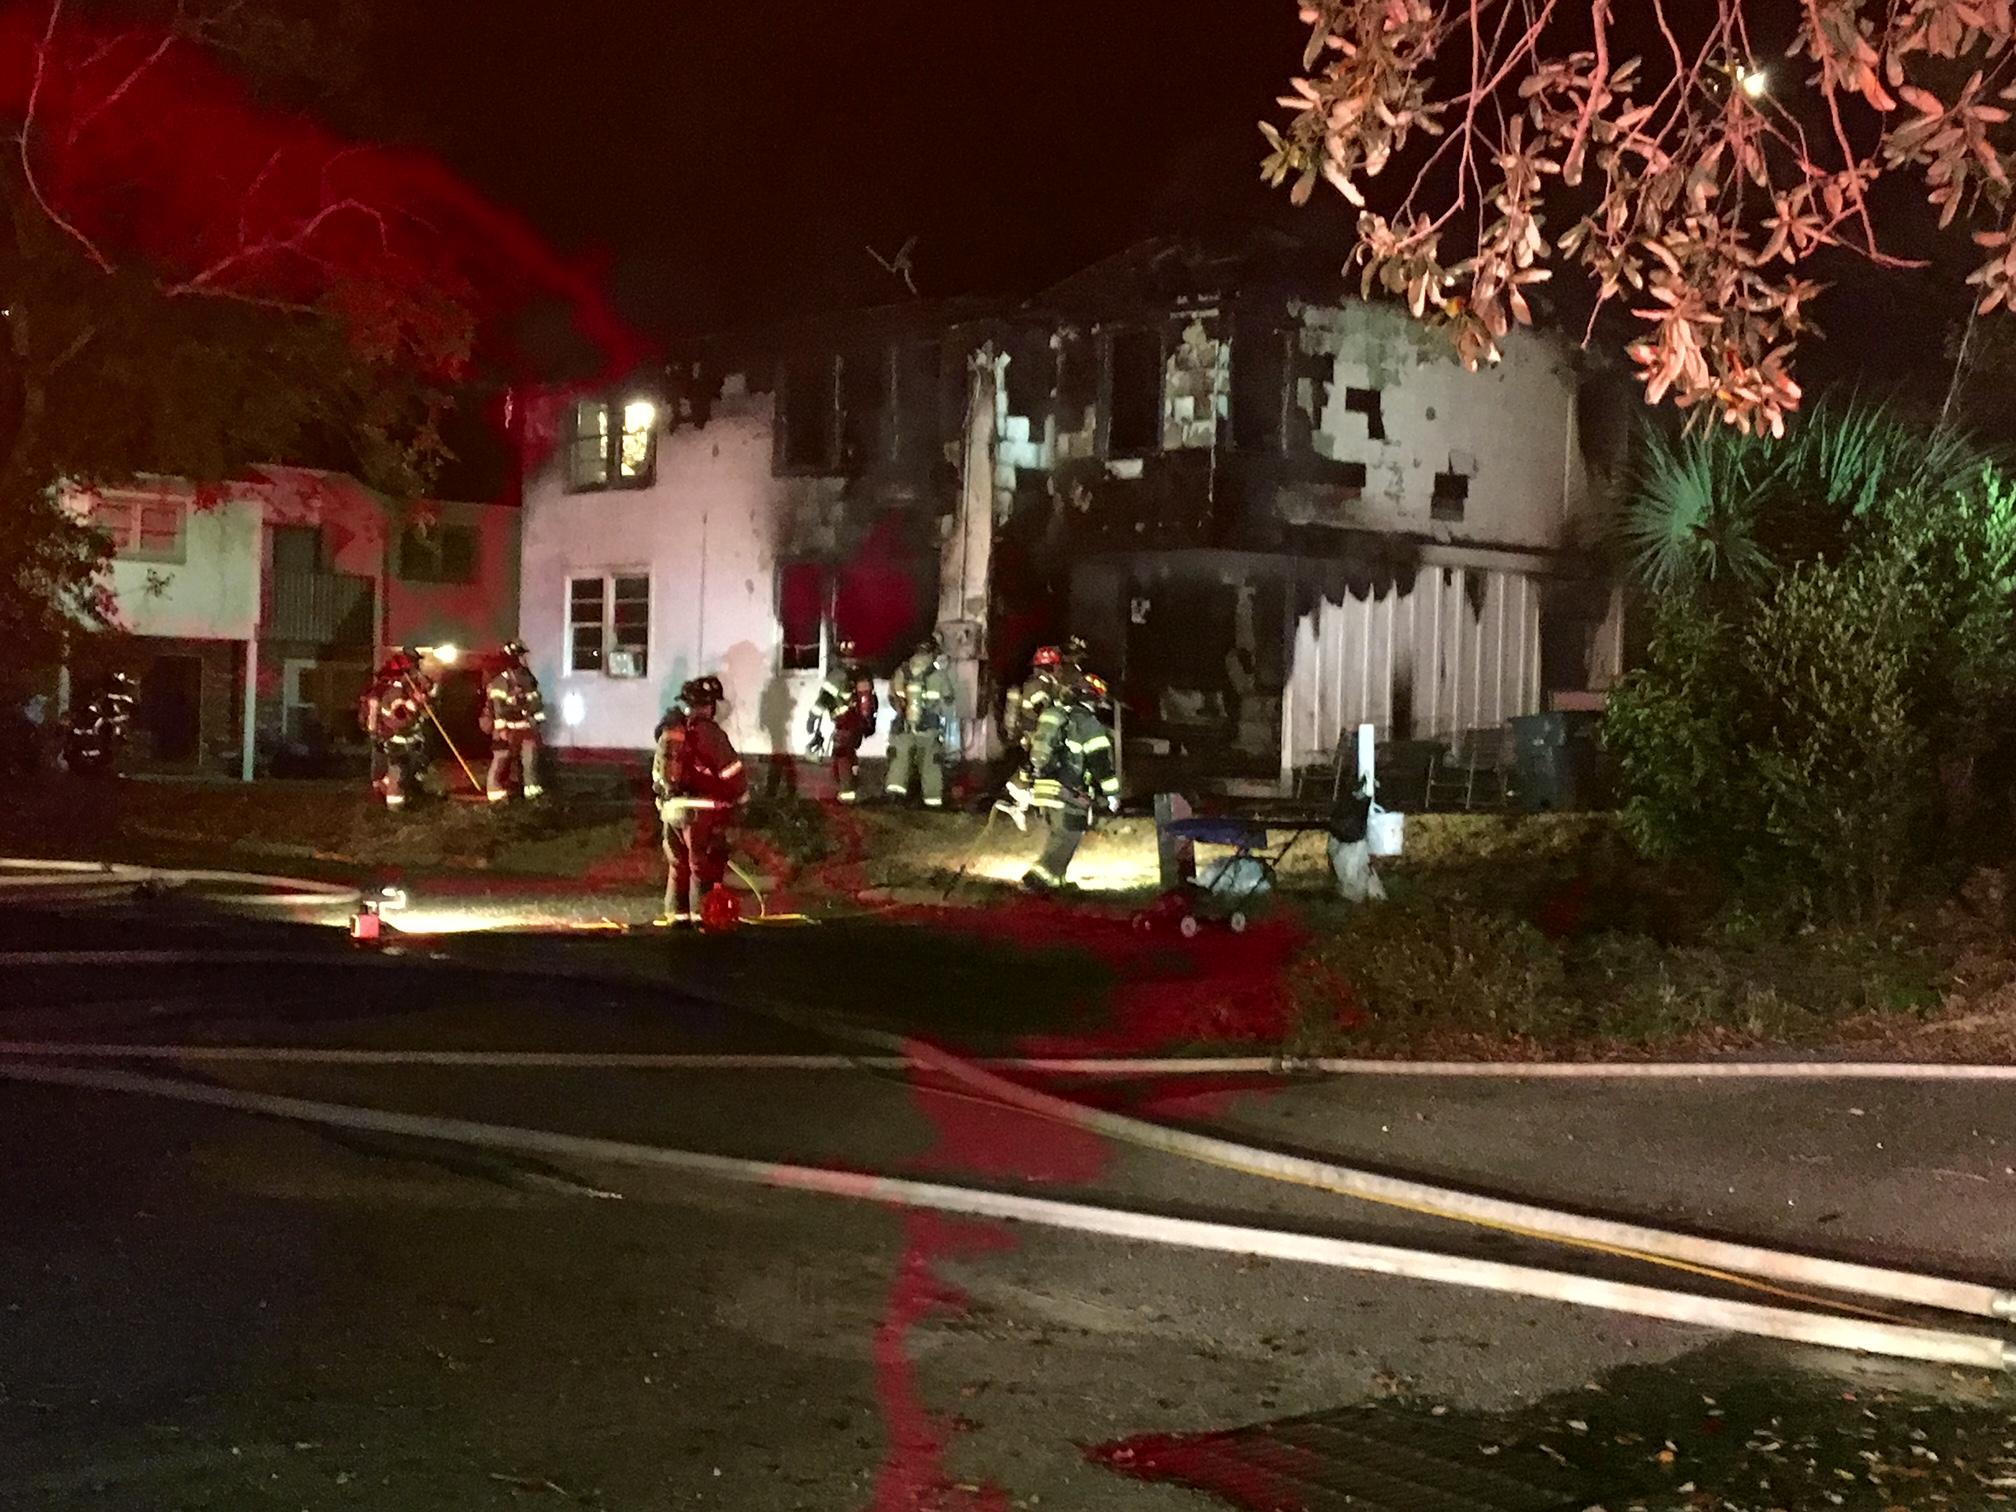 Crews responded to a house fire in Myrtle Beach Tuesday evening. (WPDE)